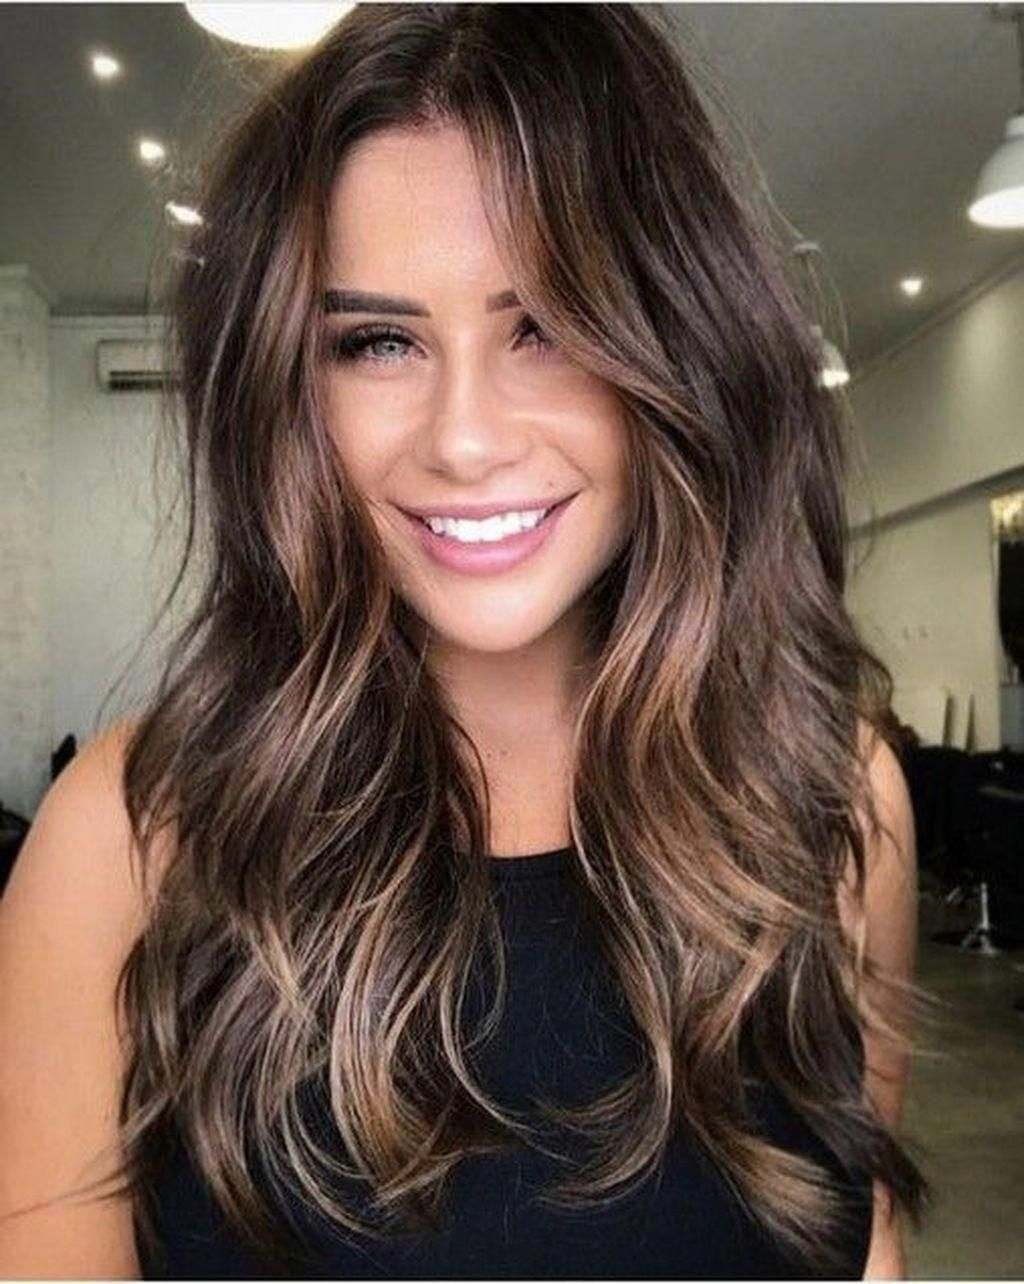 Awesome 49 Unique Dark Brown Hair Color Highlights Ideas Brownhairwithhighlights In 2020 Frisuren Schulterlang Balayage Frisur Haarfarben